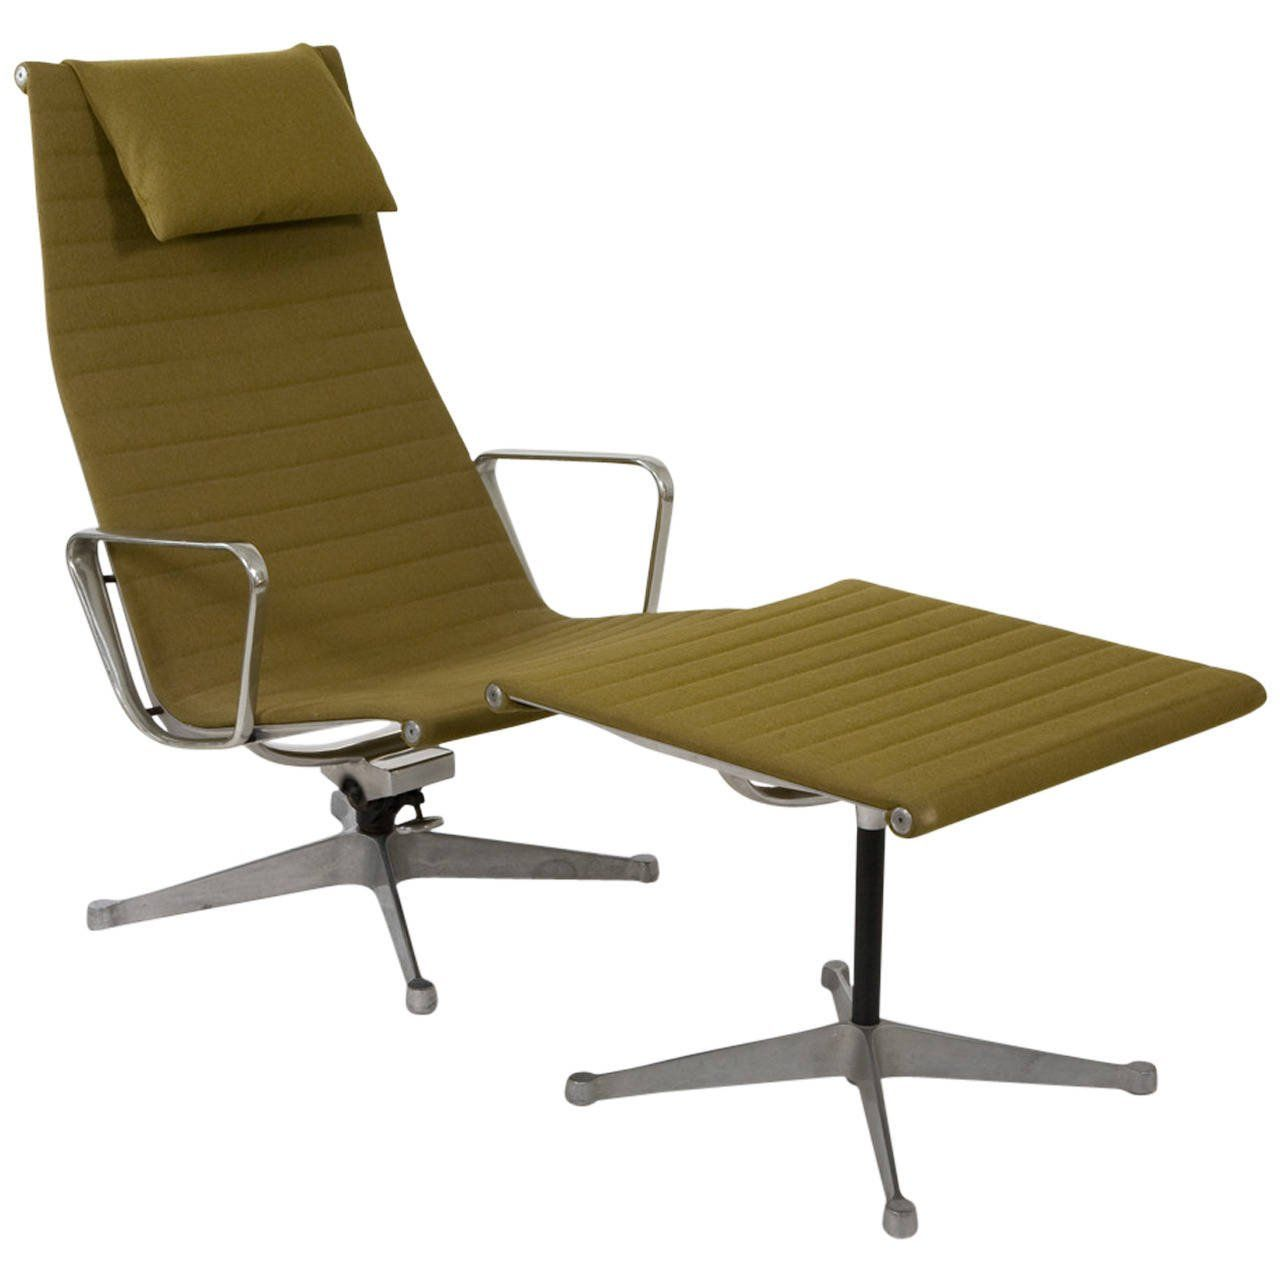 Original Eames For Herman Miller Aluminum Group Chairs